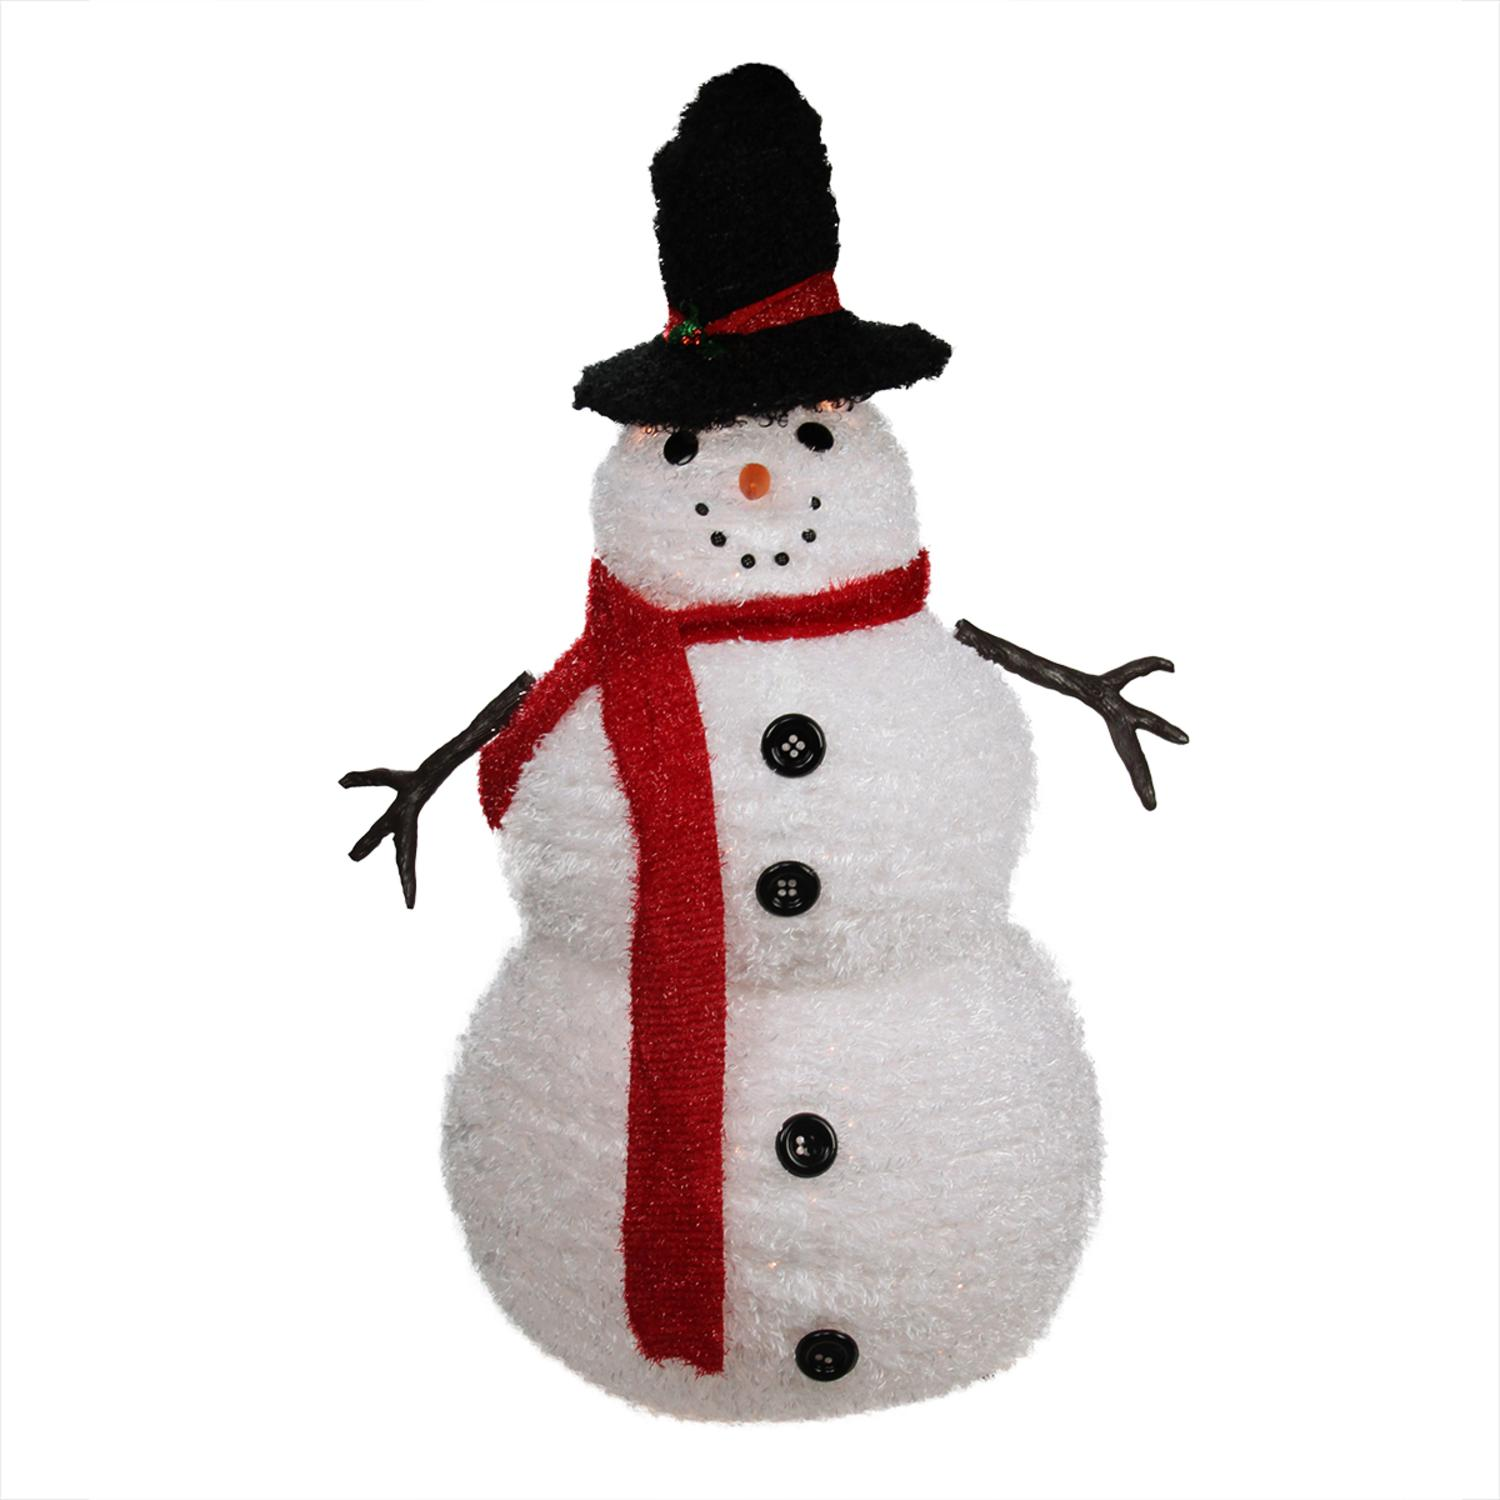 4' Lighted 3-D Chenille Winter Snowman with Top Hat Outdoor Christmas Yard  Art Decoration - Walmart.com - 4' Lighted 3-D Chenille Winter Snowman With Top Hat Outdoor